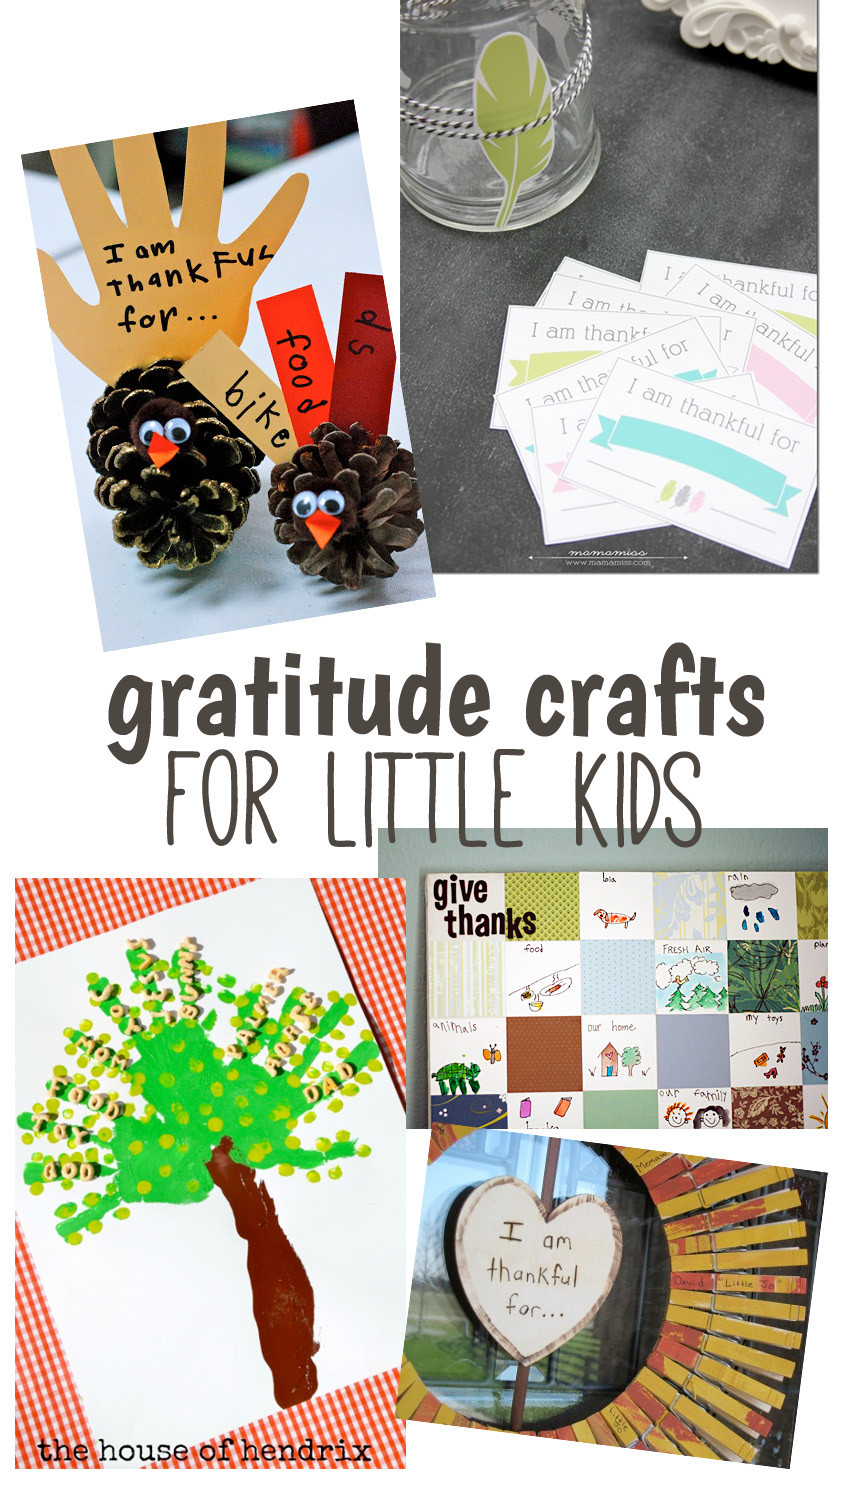 Best ideas about Crafts For Little Kids . Save or Pin 10 Creative Gratitude Crafts for Big and Little Kids Now.